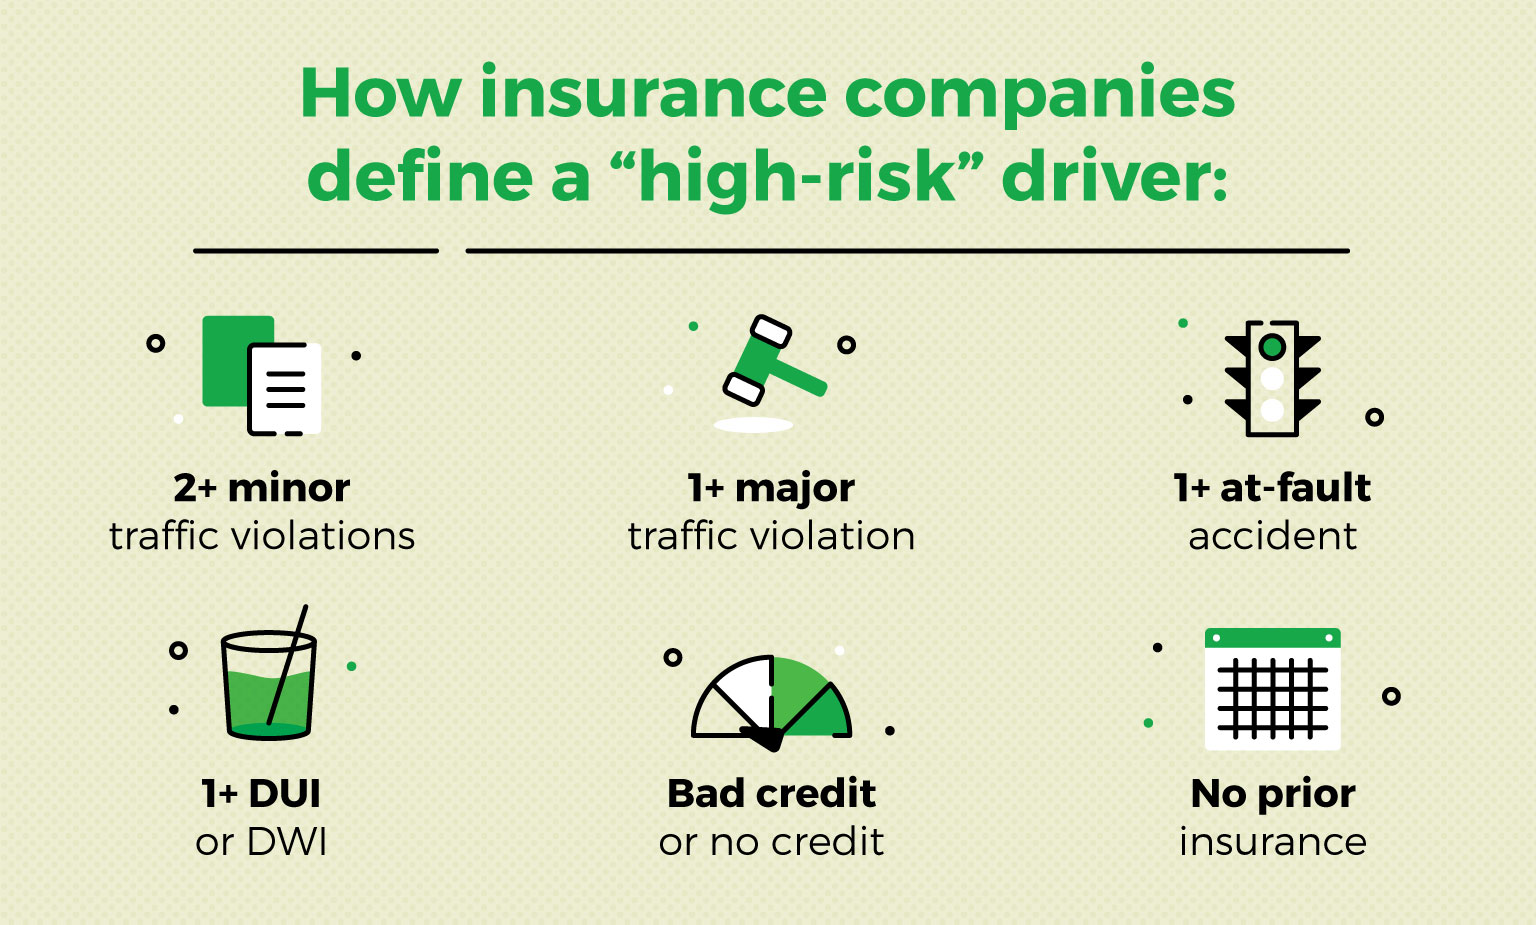 how insurance companies define high-risk drivers